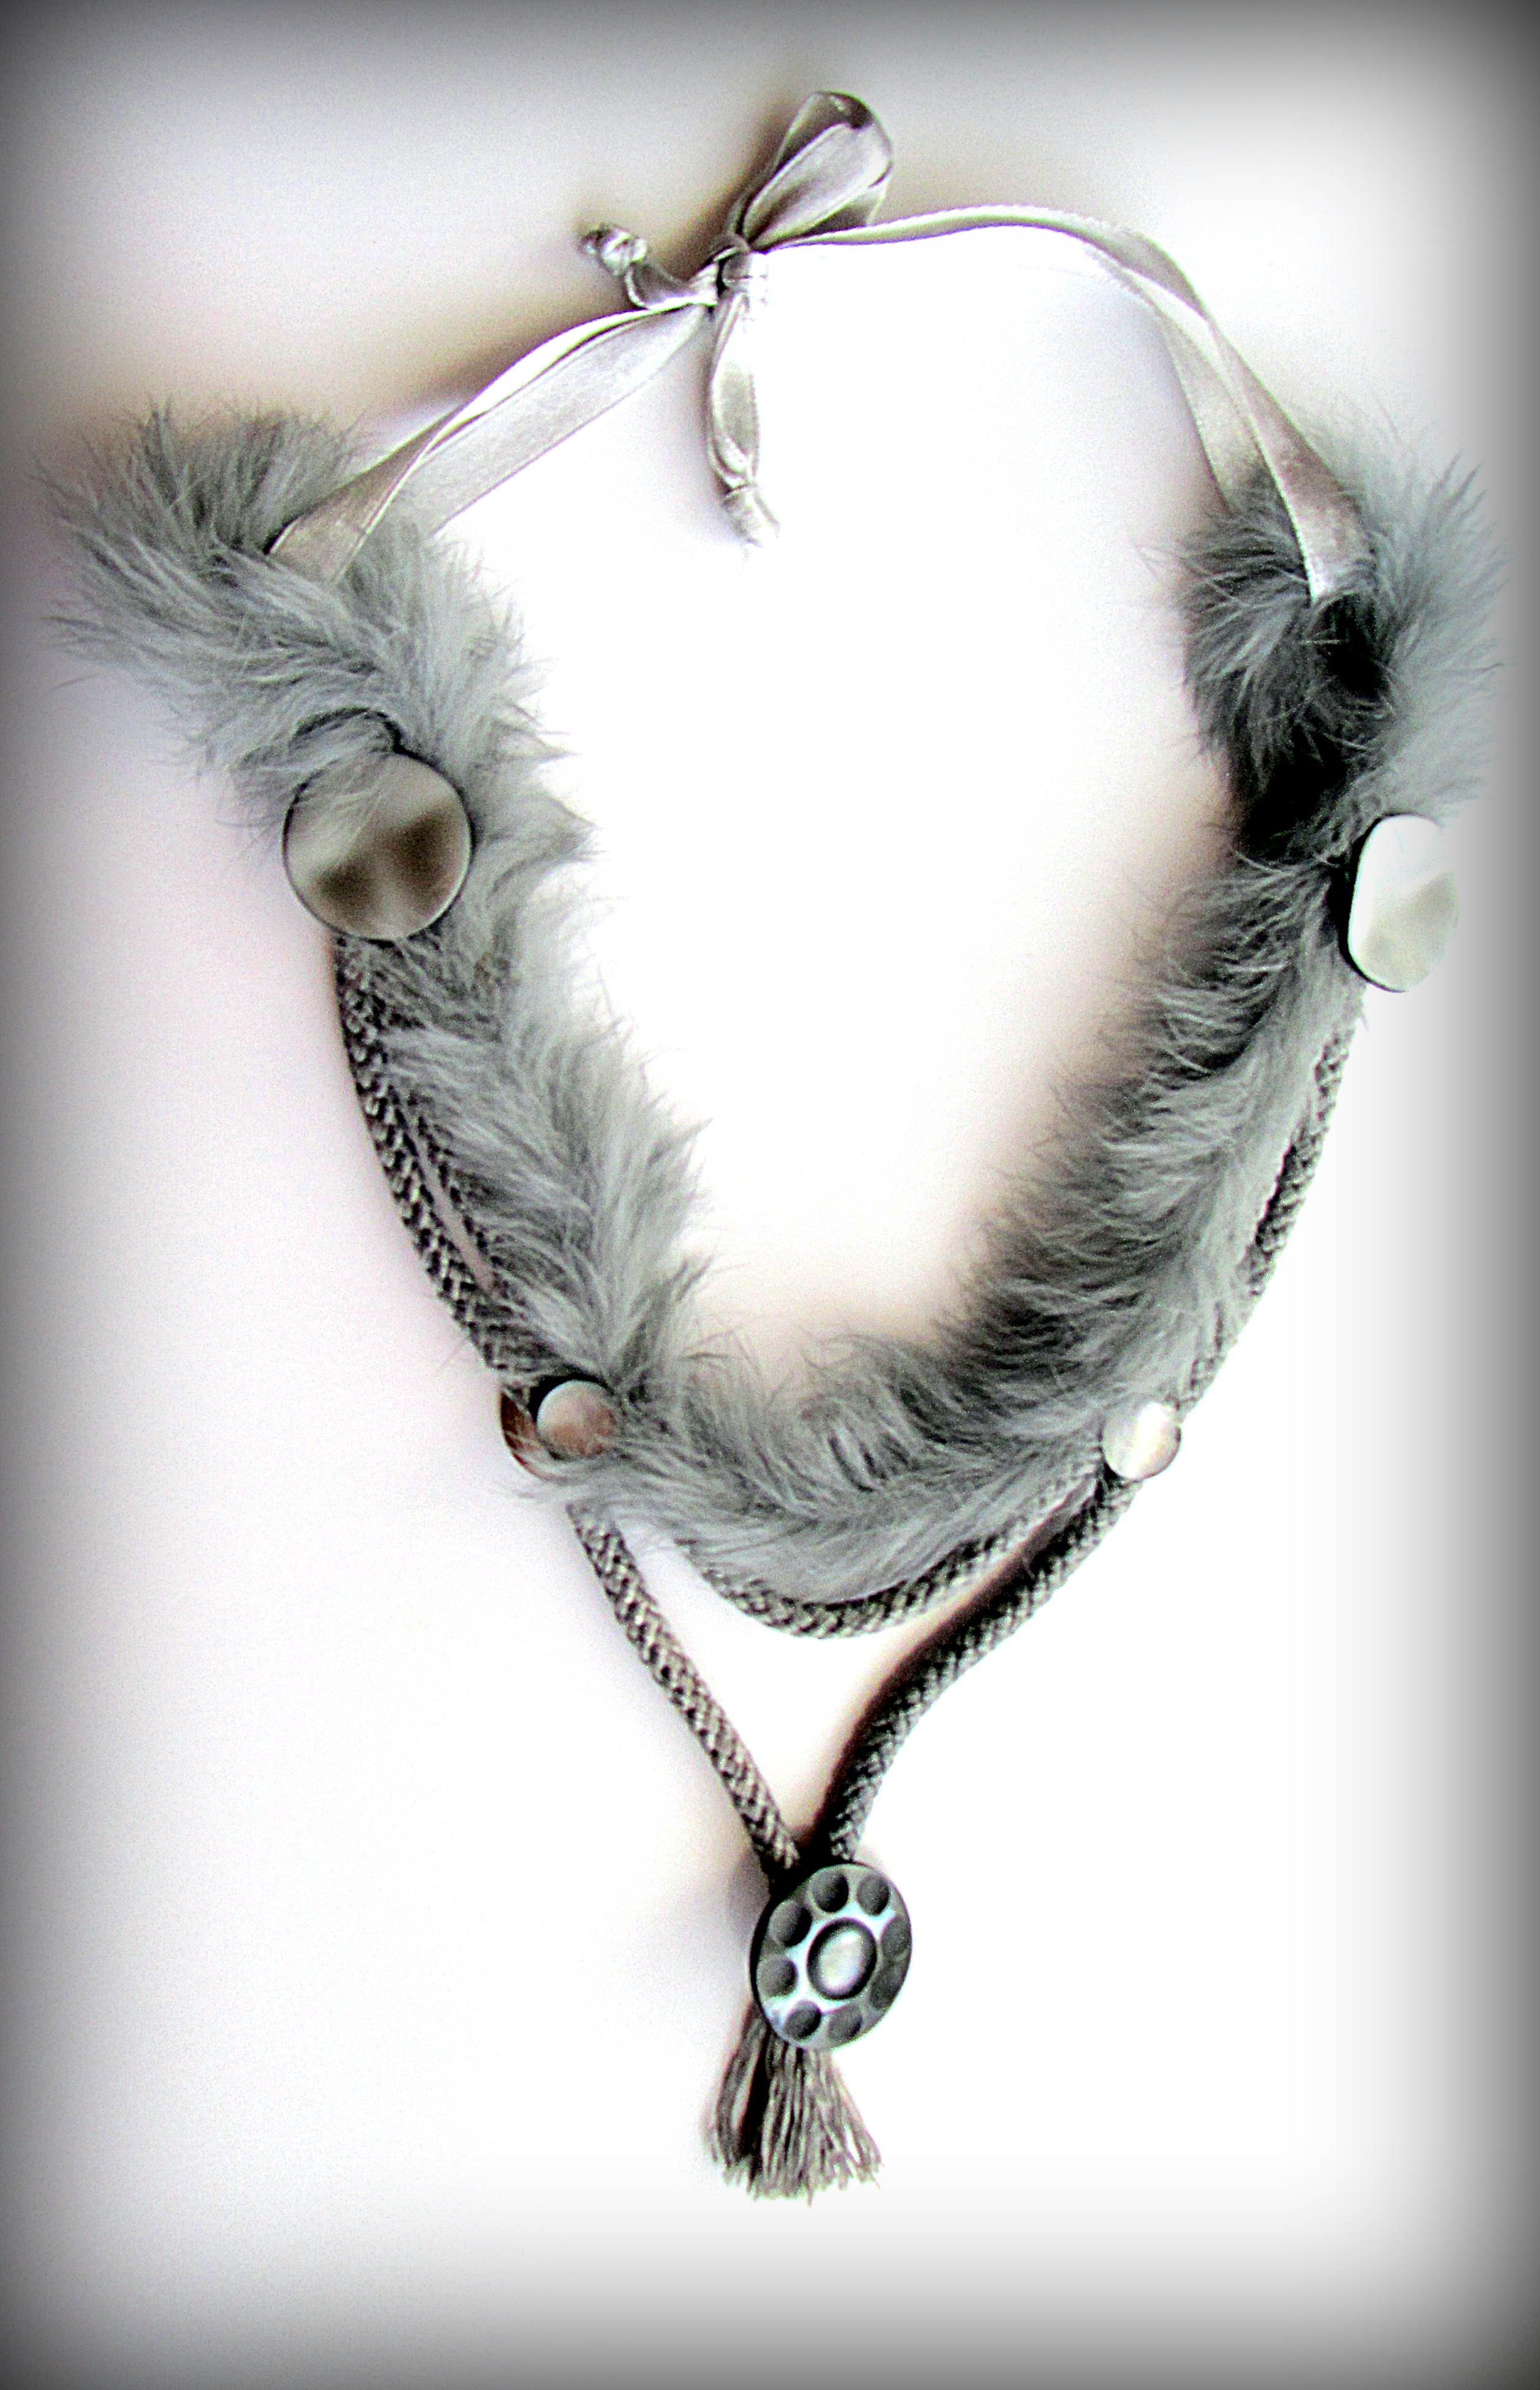 A gray necklace